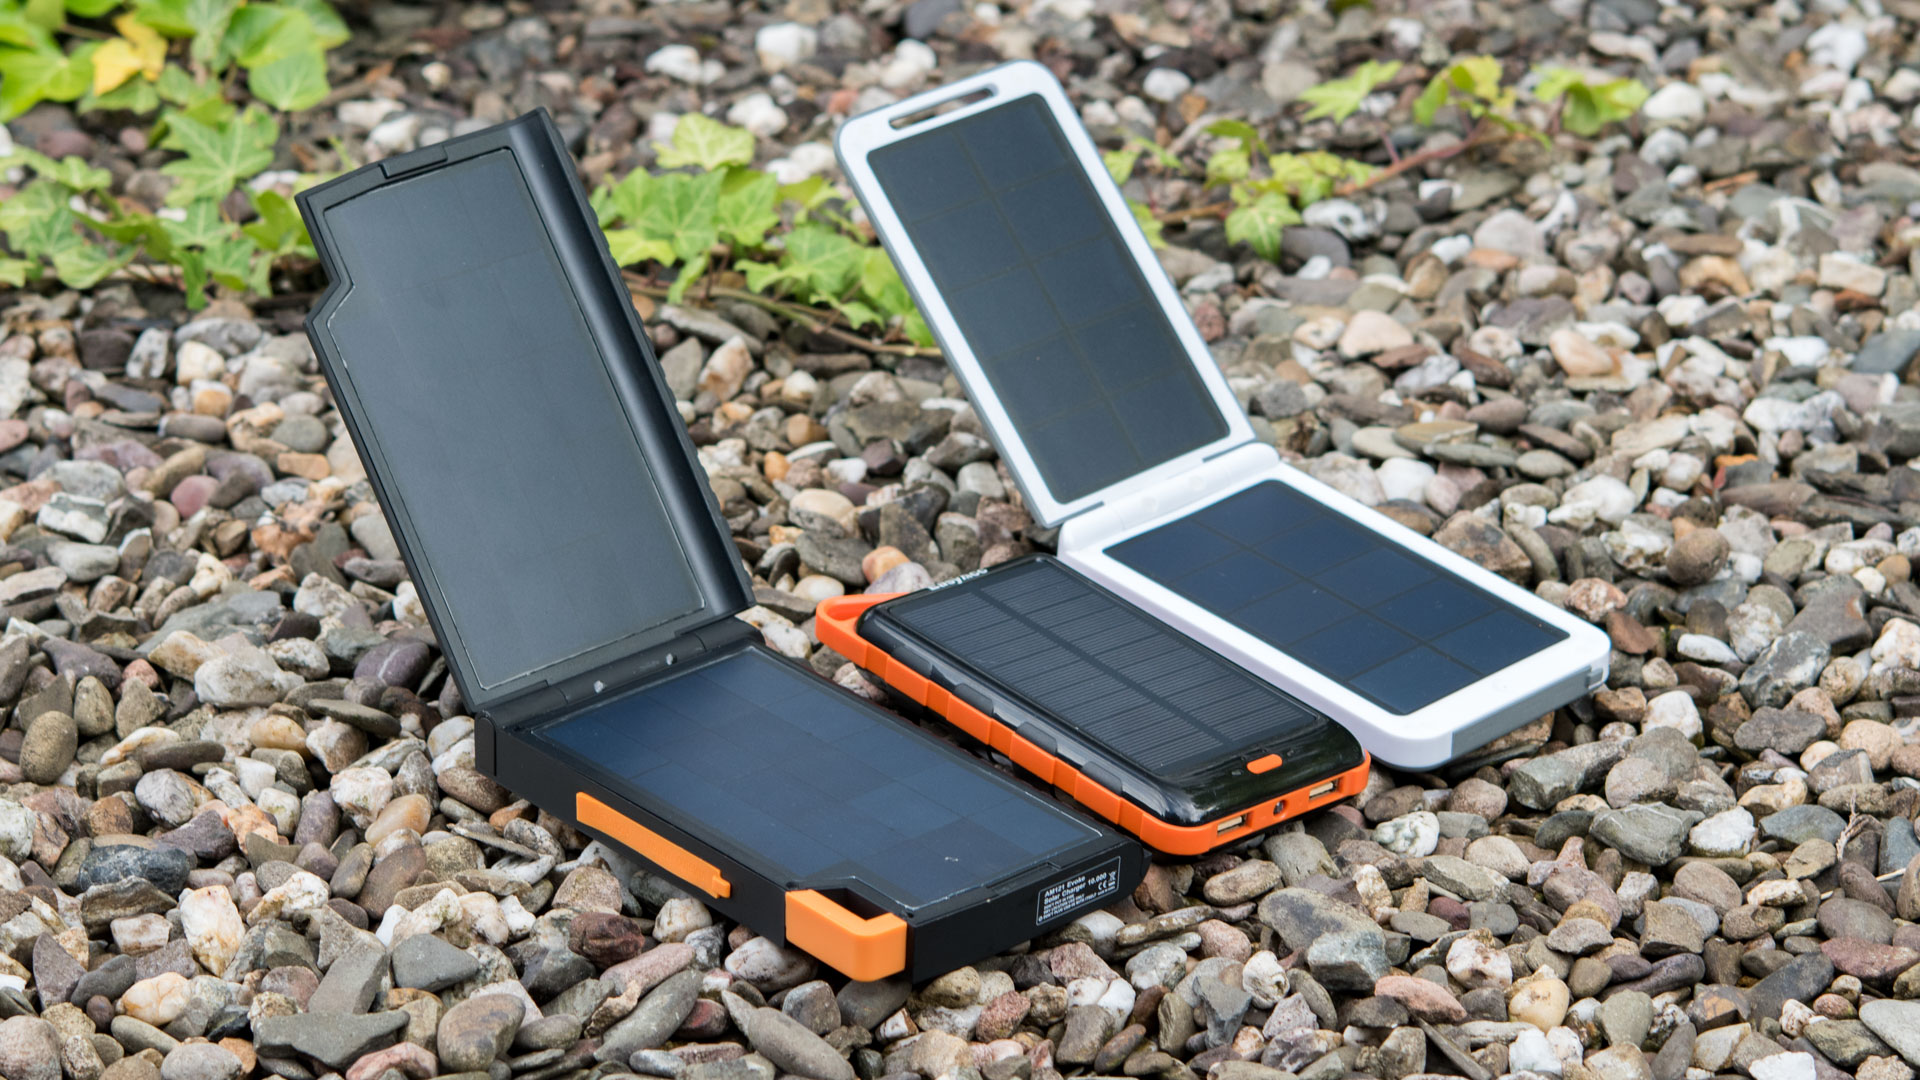 die beste solar powerbank die xtorm am121 evoke im test. Black Bedroom Furniture Sets. Home Design Ideas